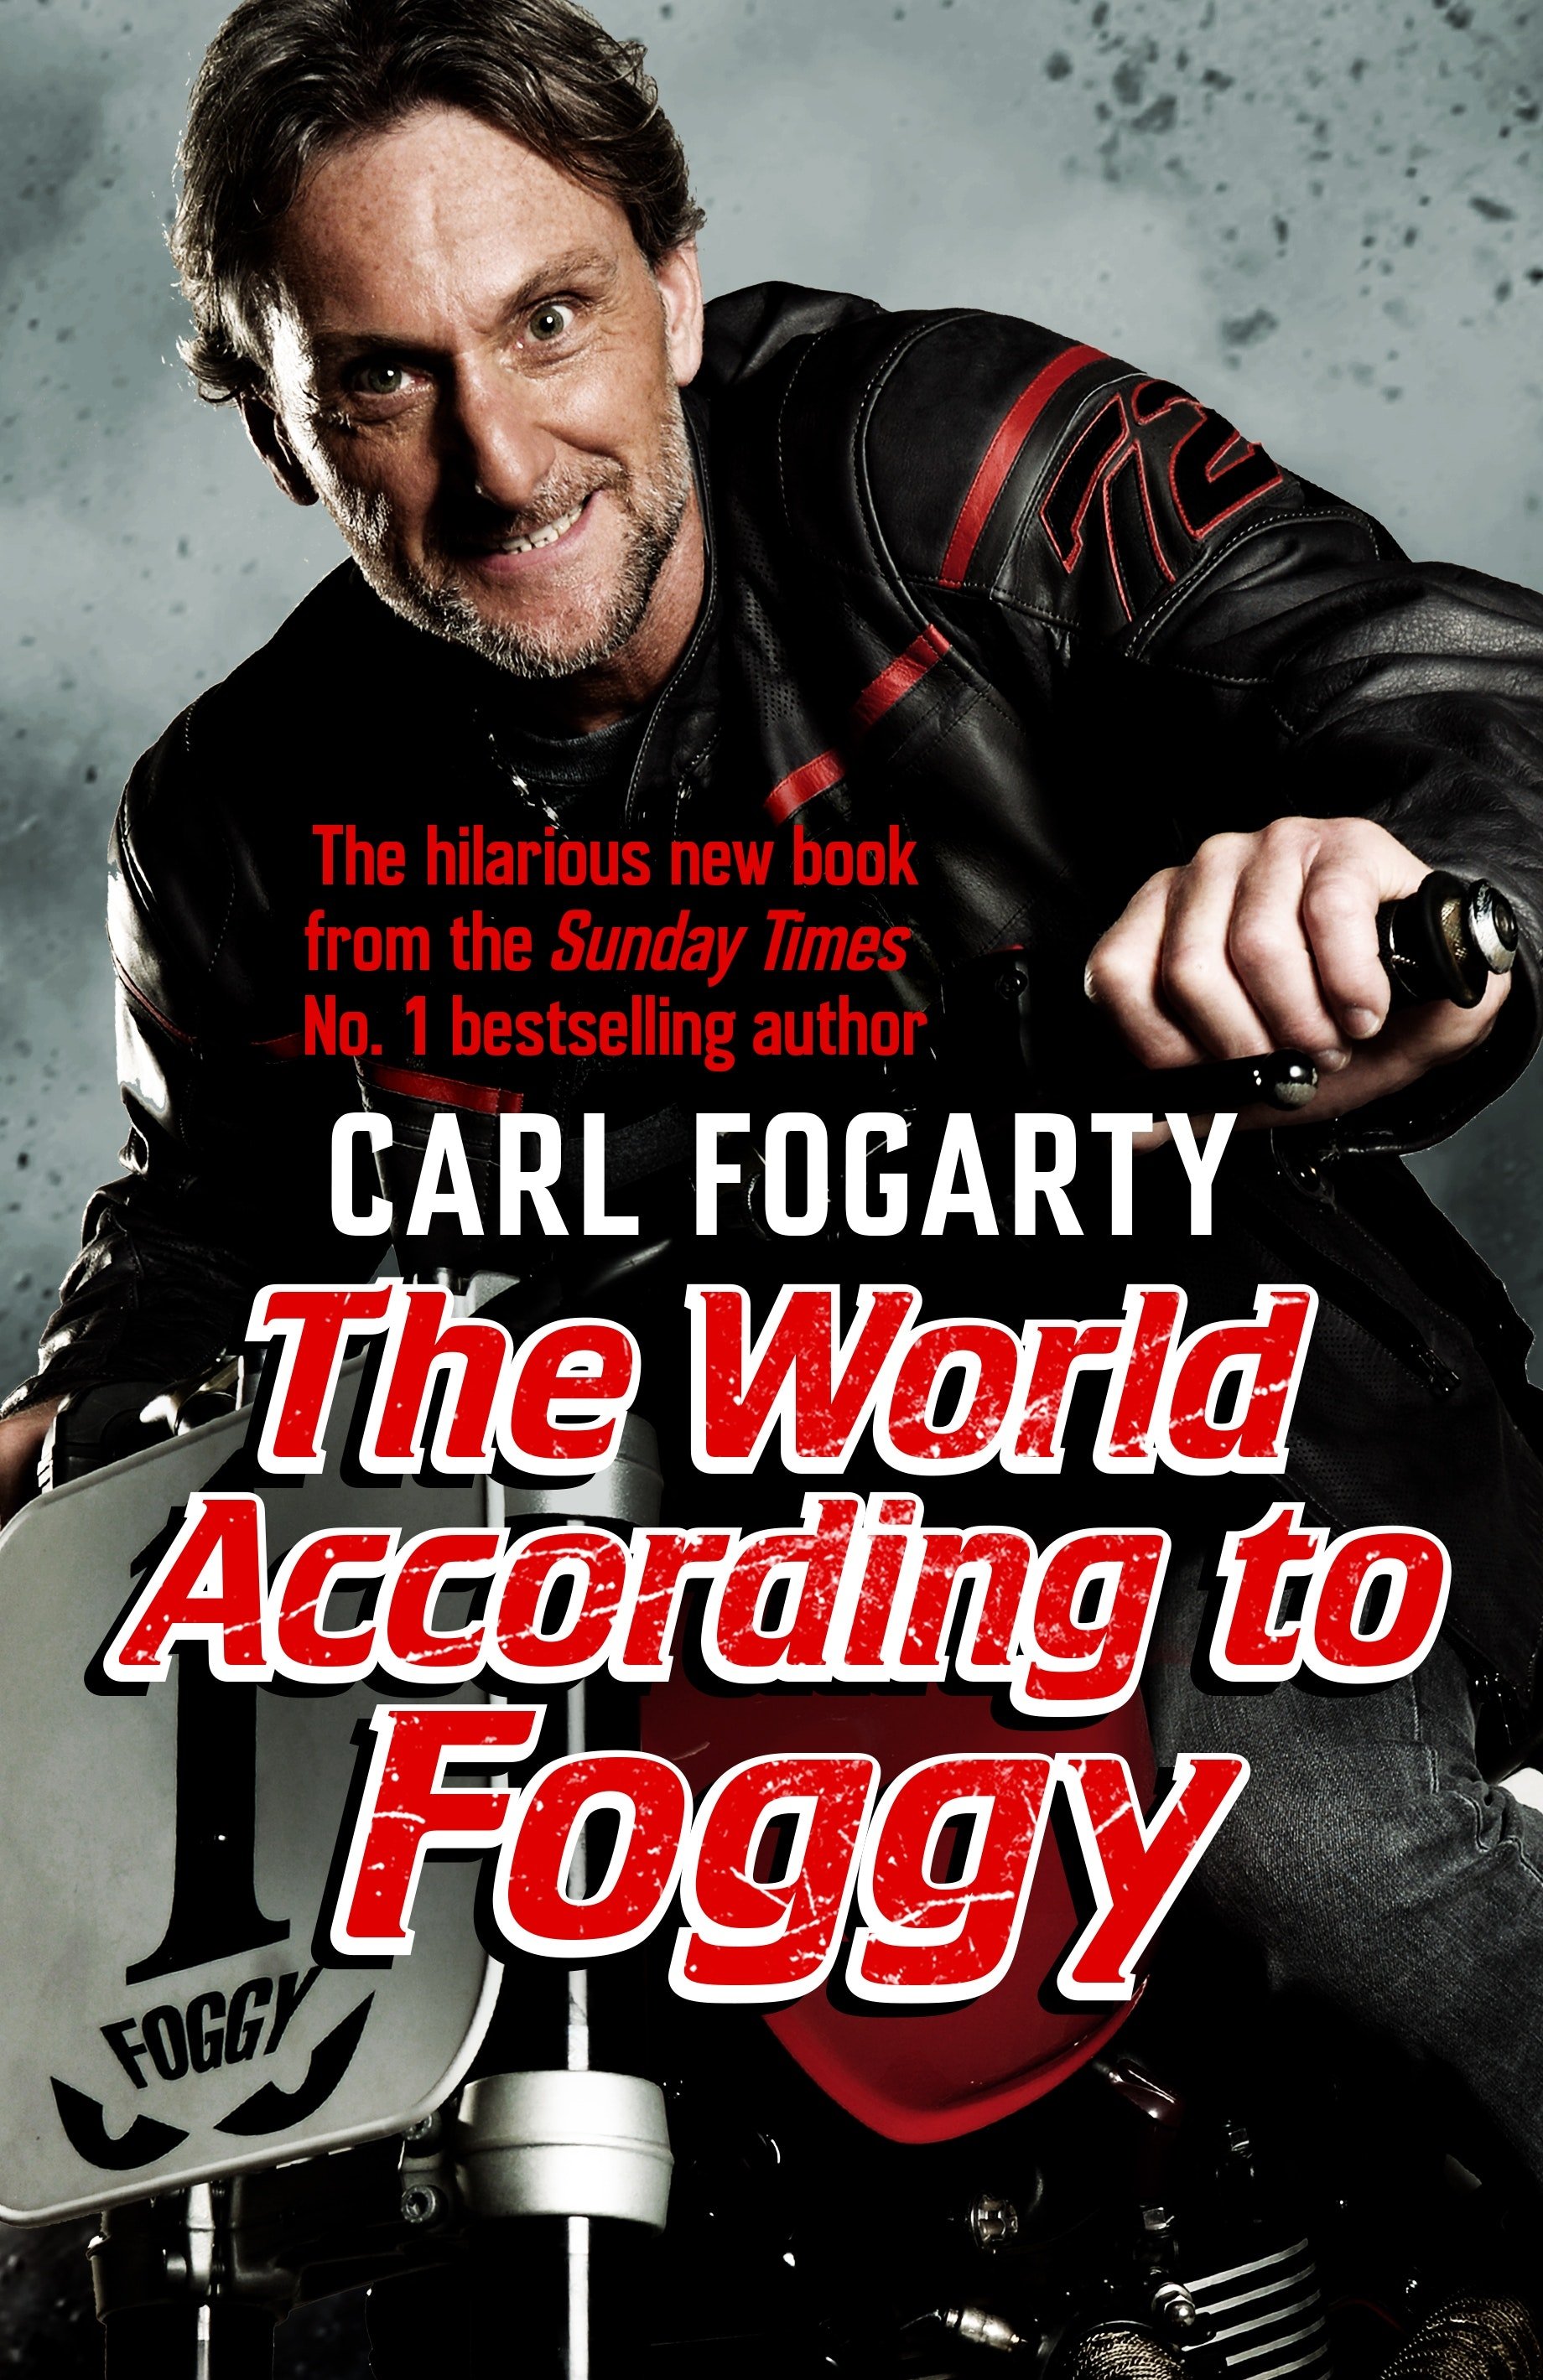 Win a signed copy of Foggy's Book sweepstakes